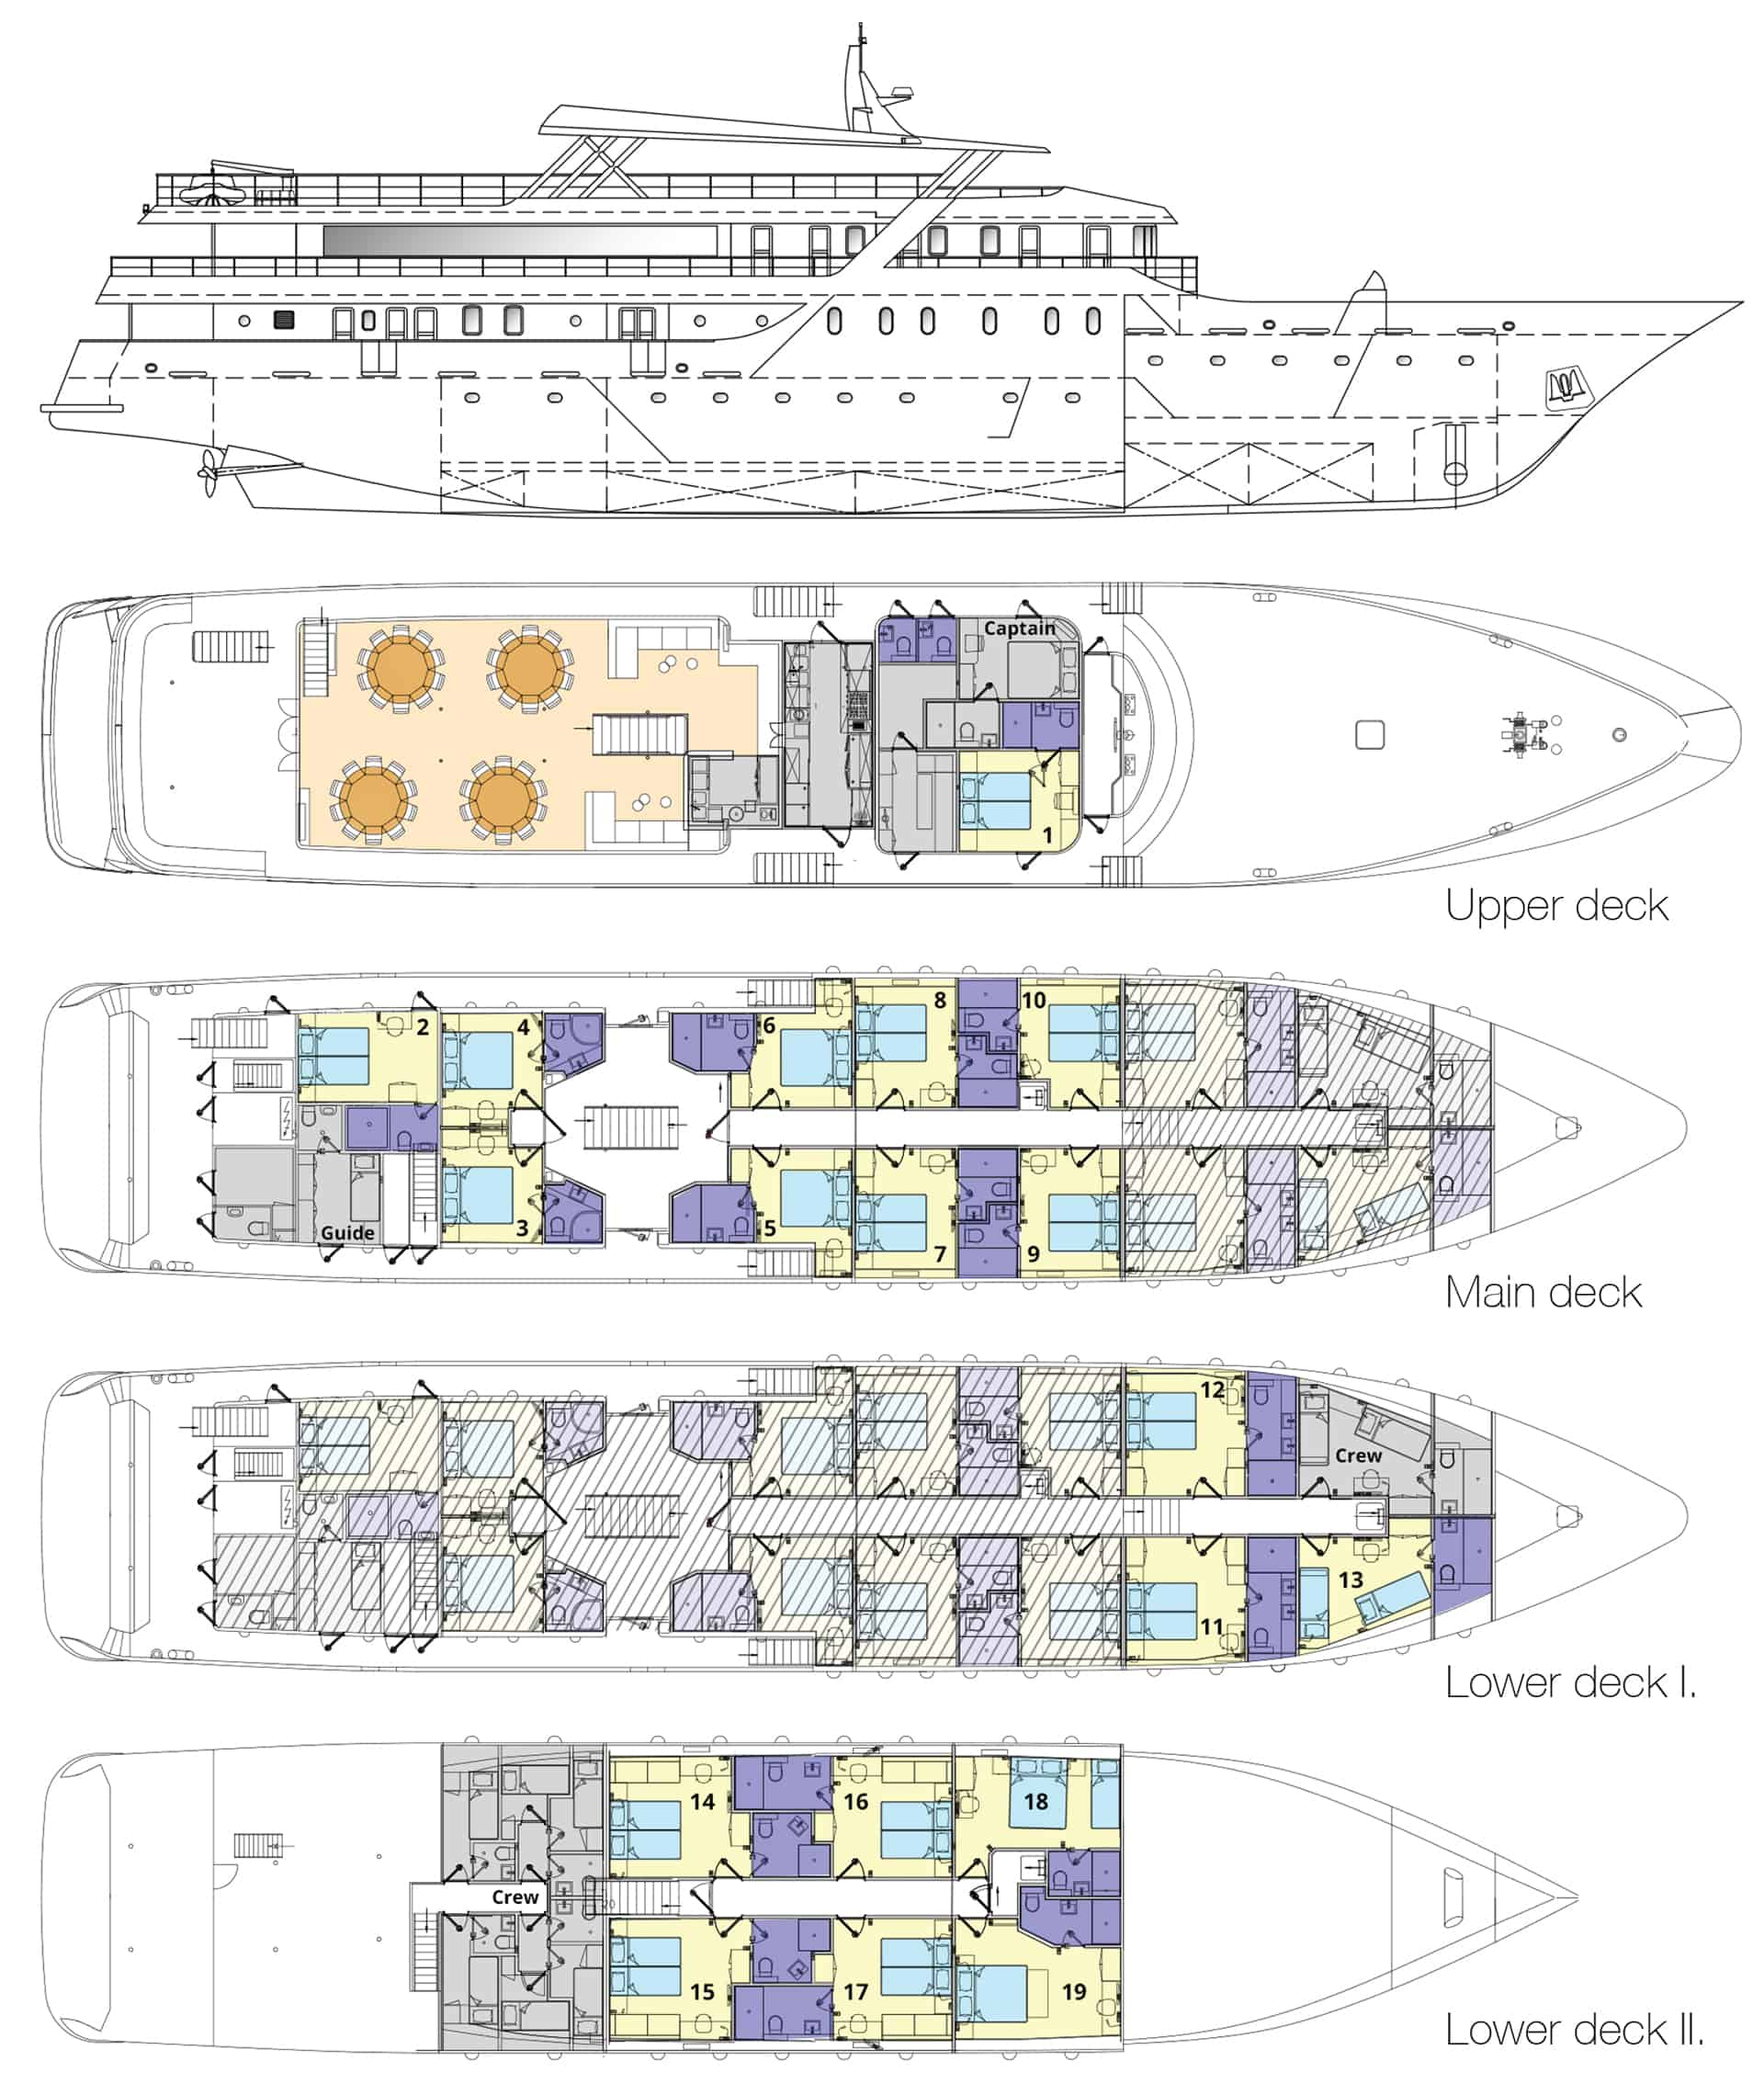 Deck plan of Nautilus deluxe Mediterranean yacht, showing four decks with guest cabins.